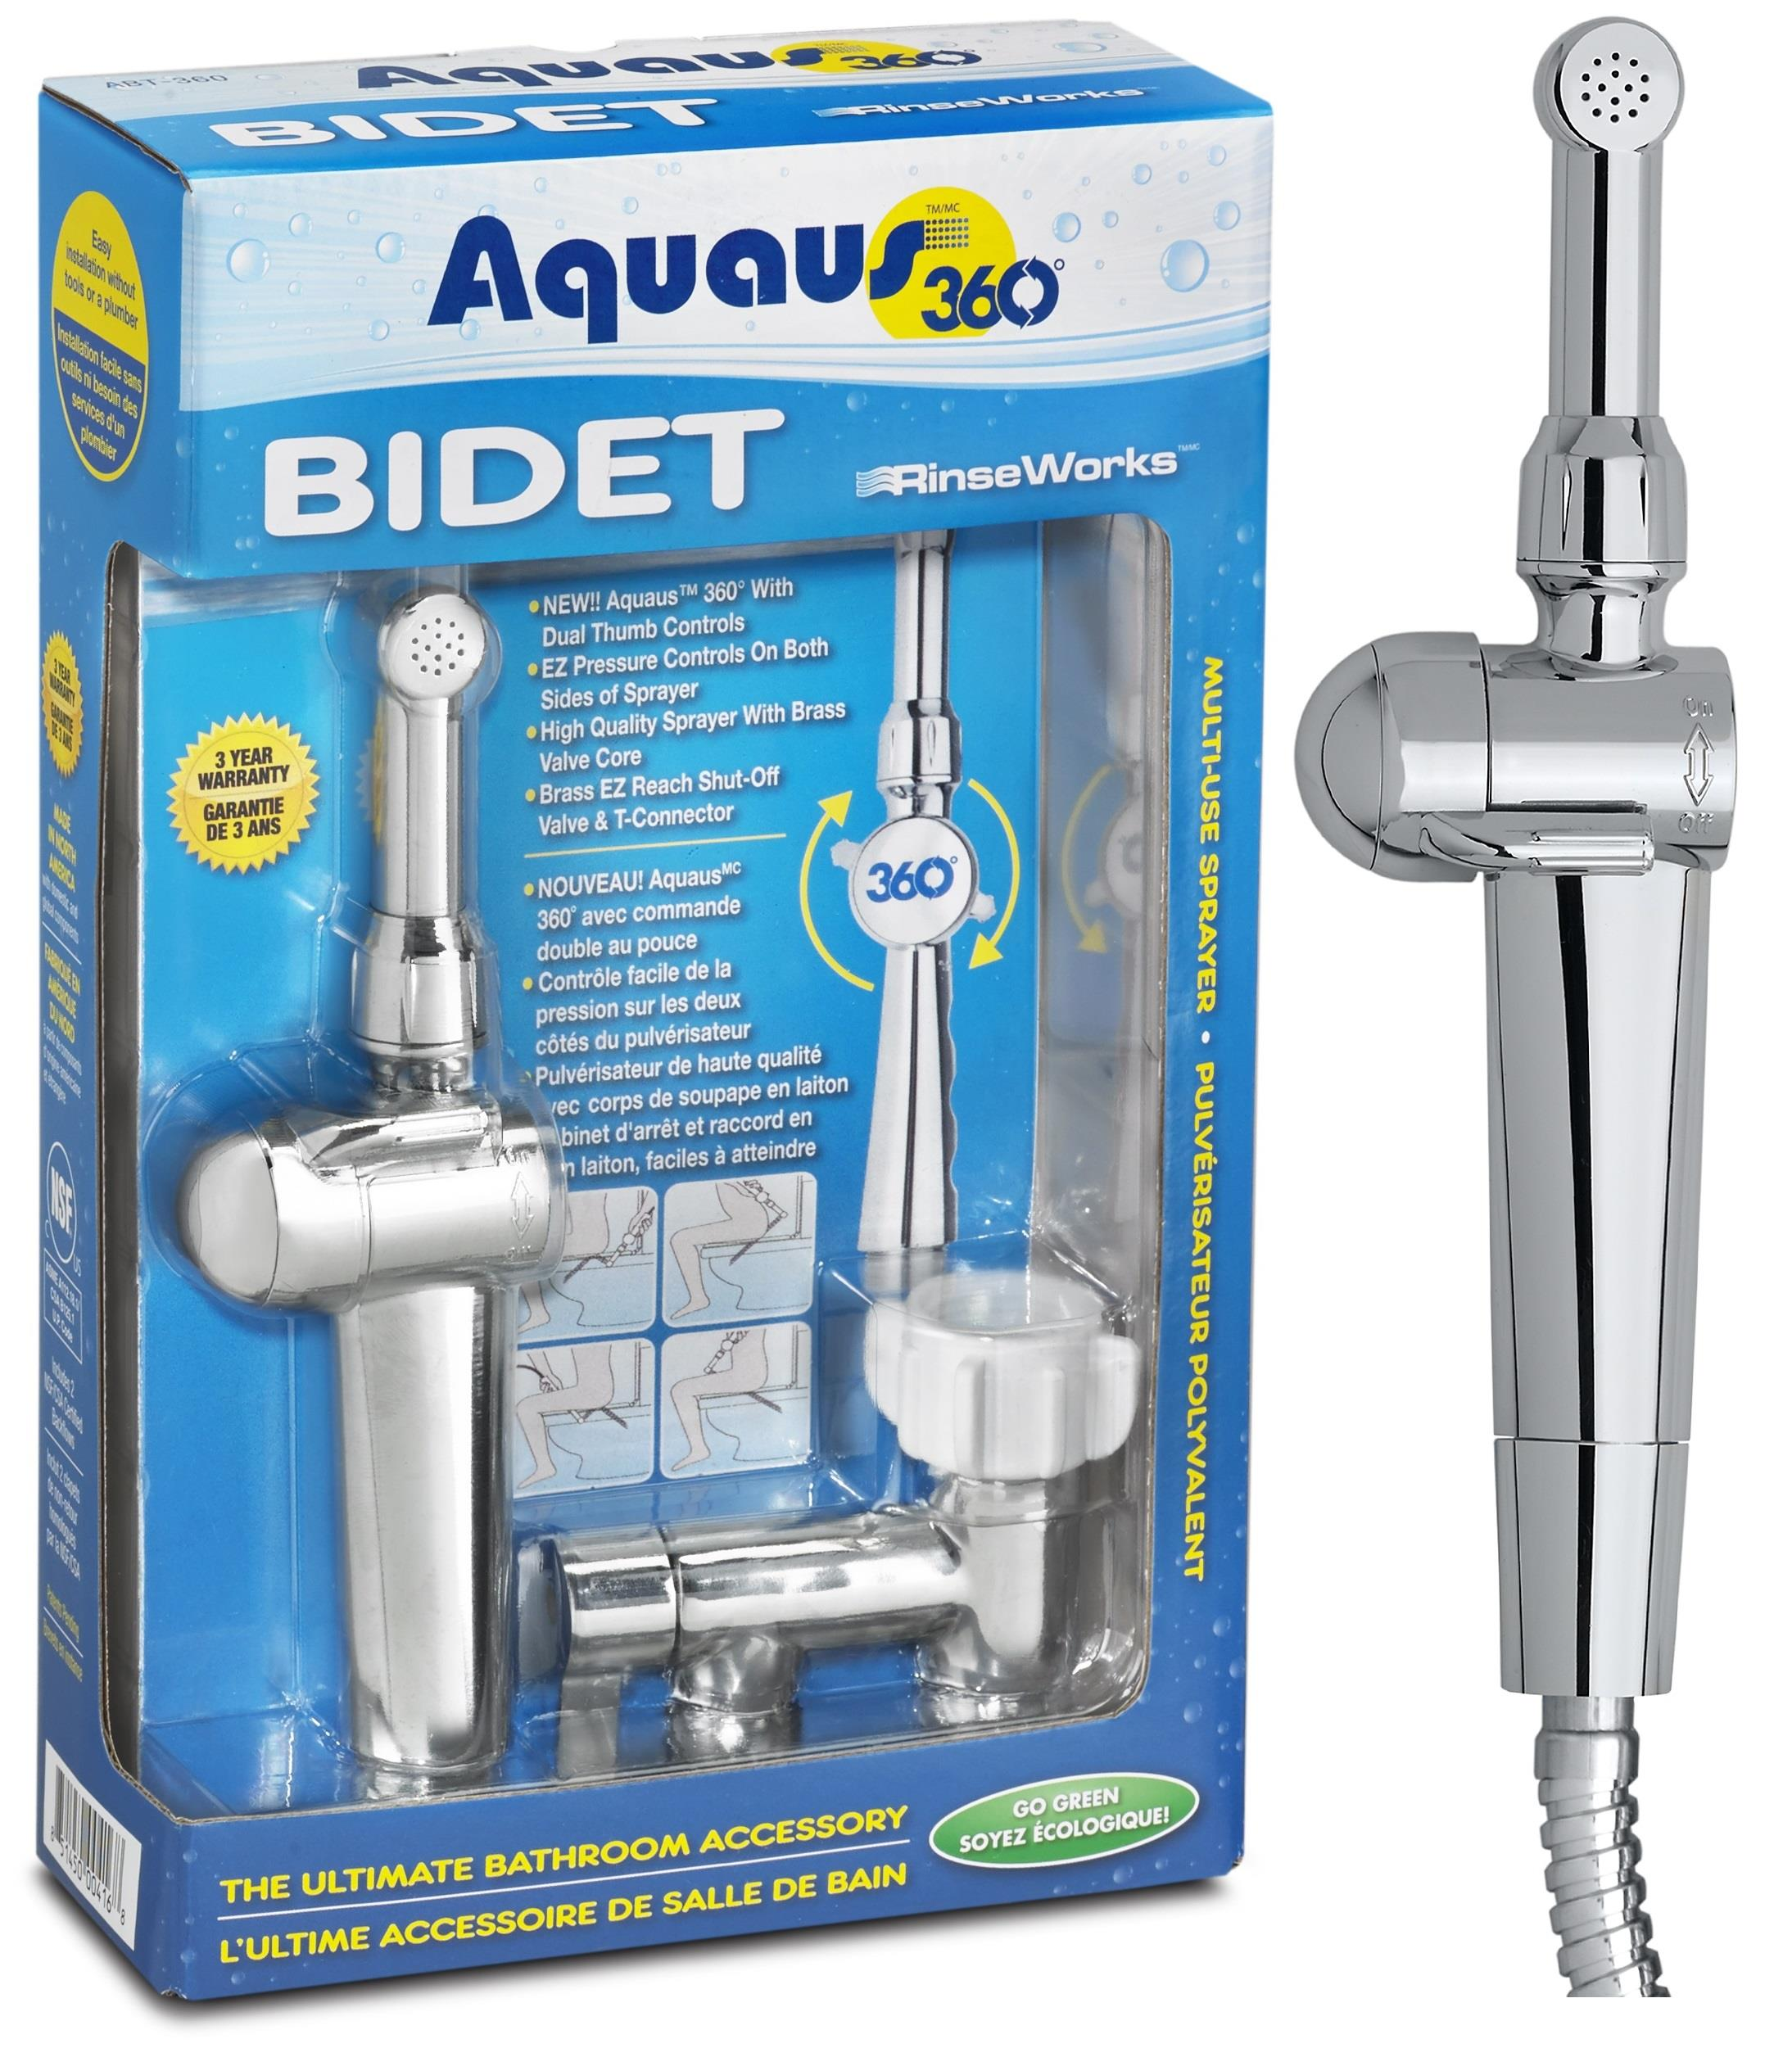 Aquaus 360 Hand Held Bidet For Toilet Shattaf Rinseworks